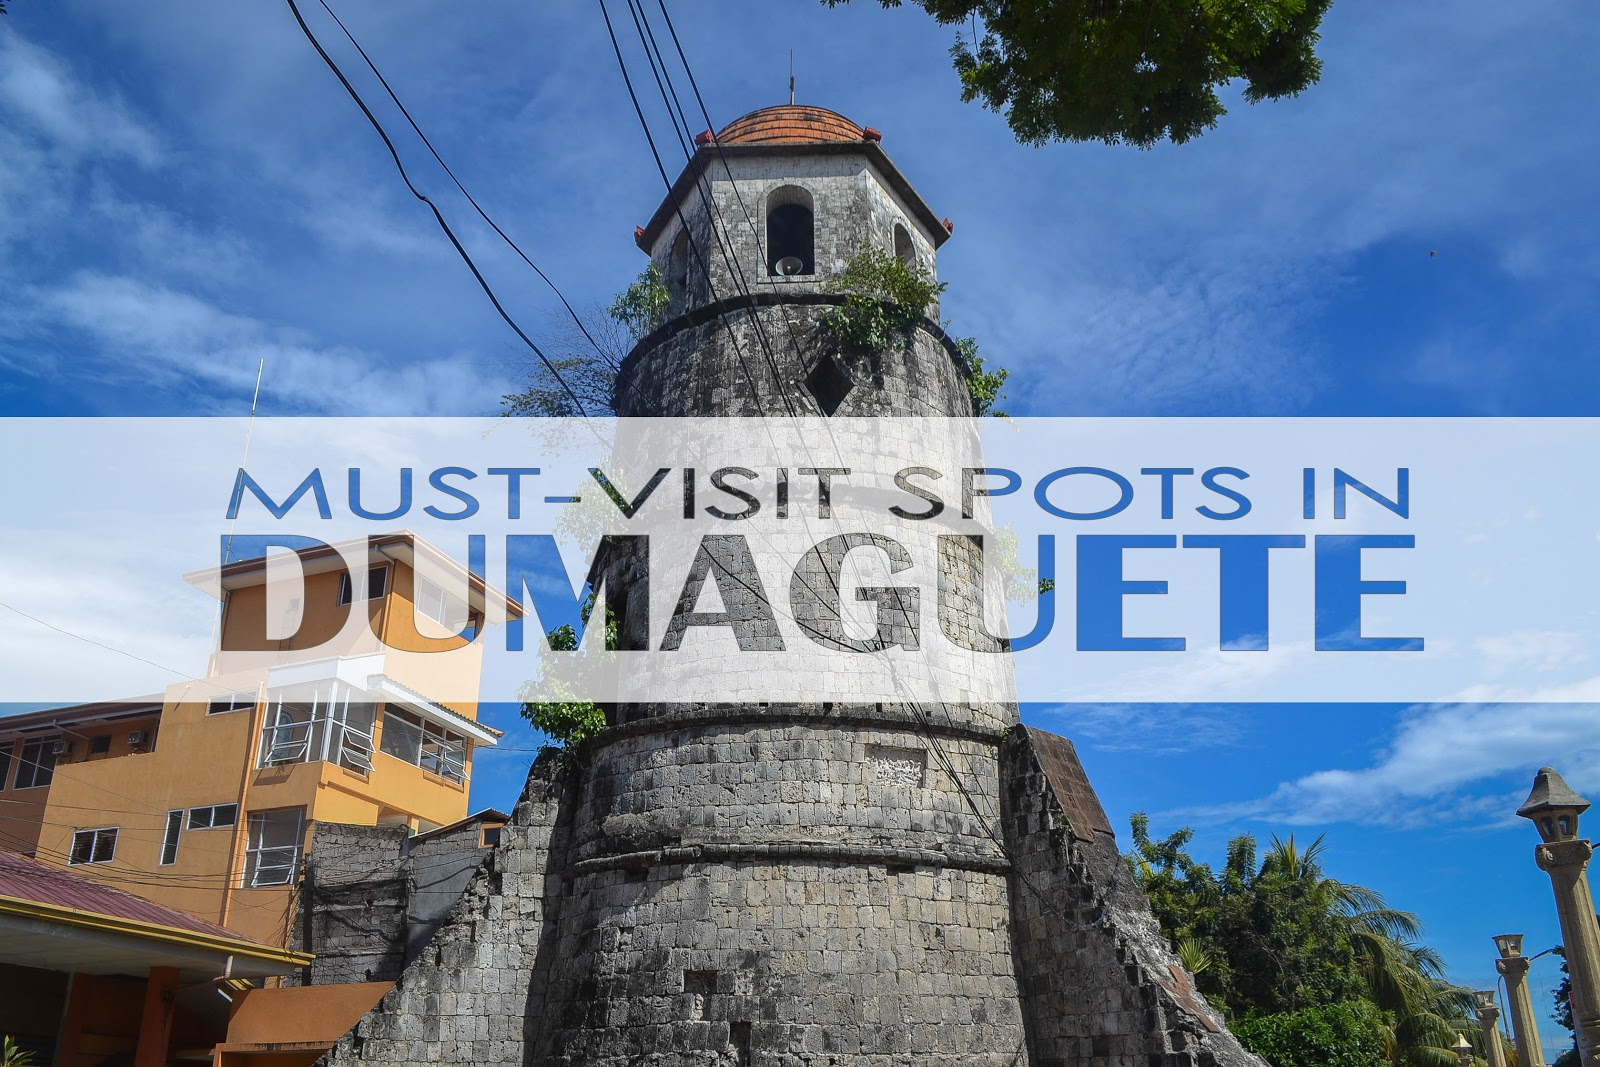 IN PHOTOS: Must-Visit Spots in Dumaguete